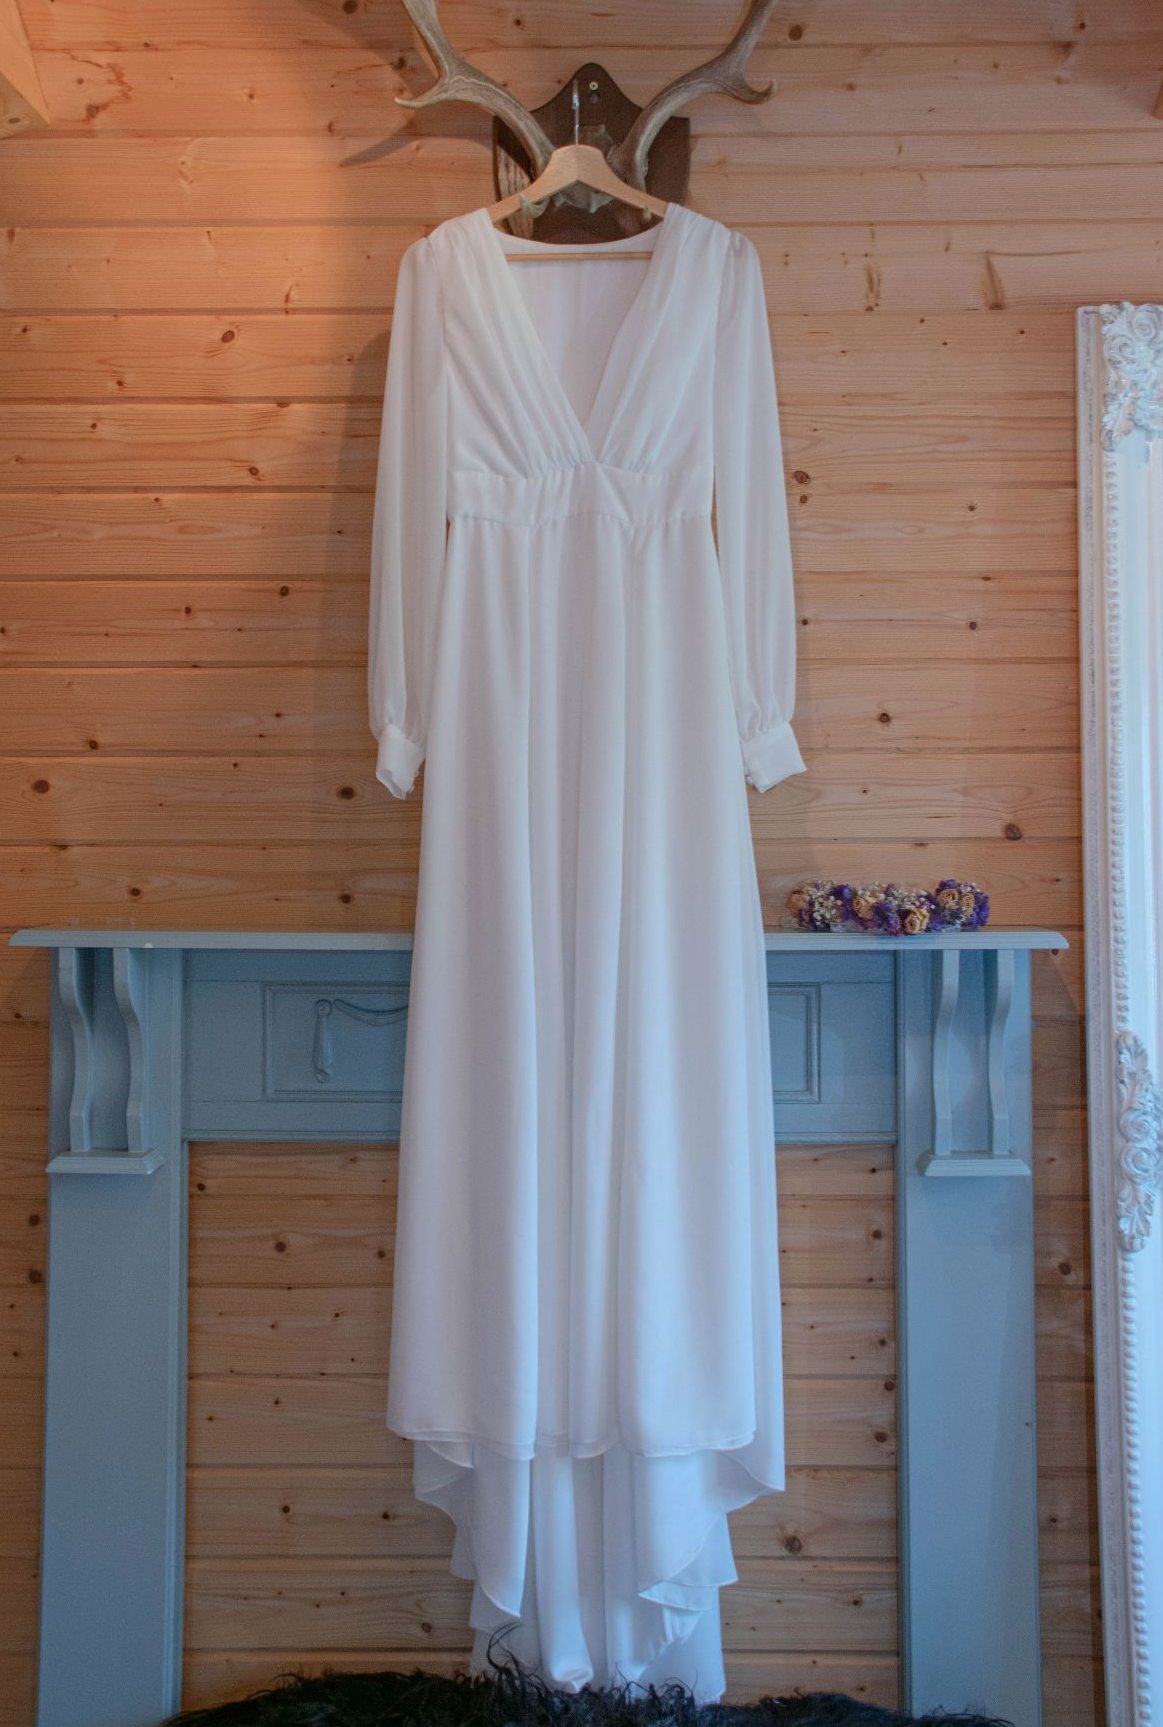 Handmade wedding dresses, boho wedding dress, alternative wedding dress, long sleeve wedding dress